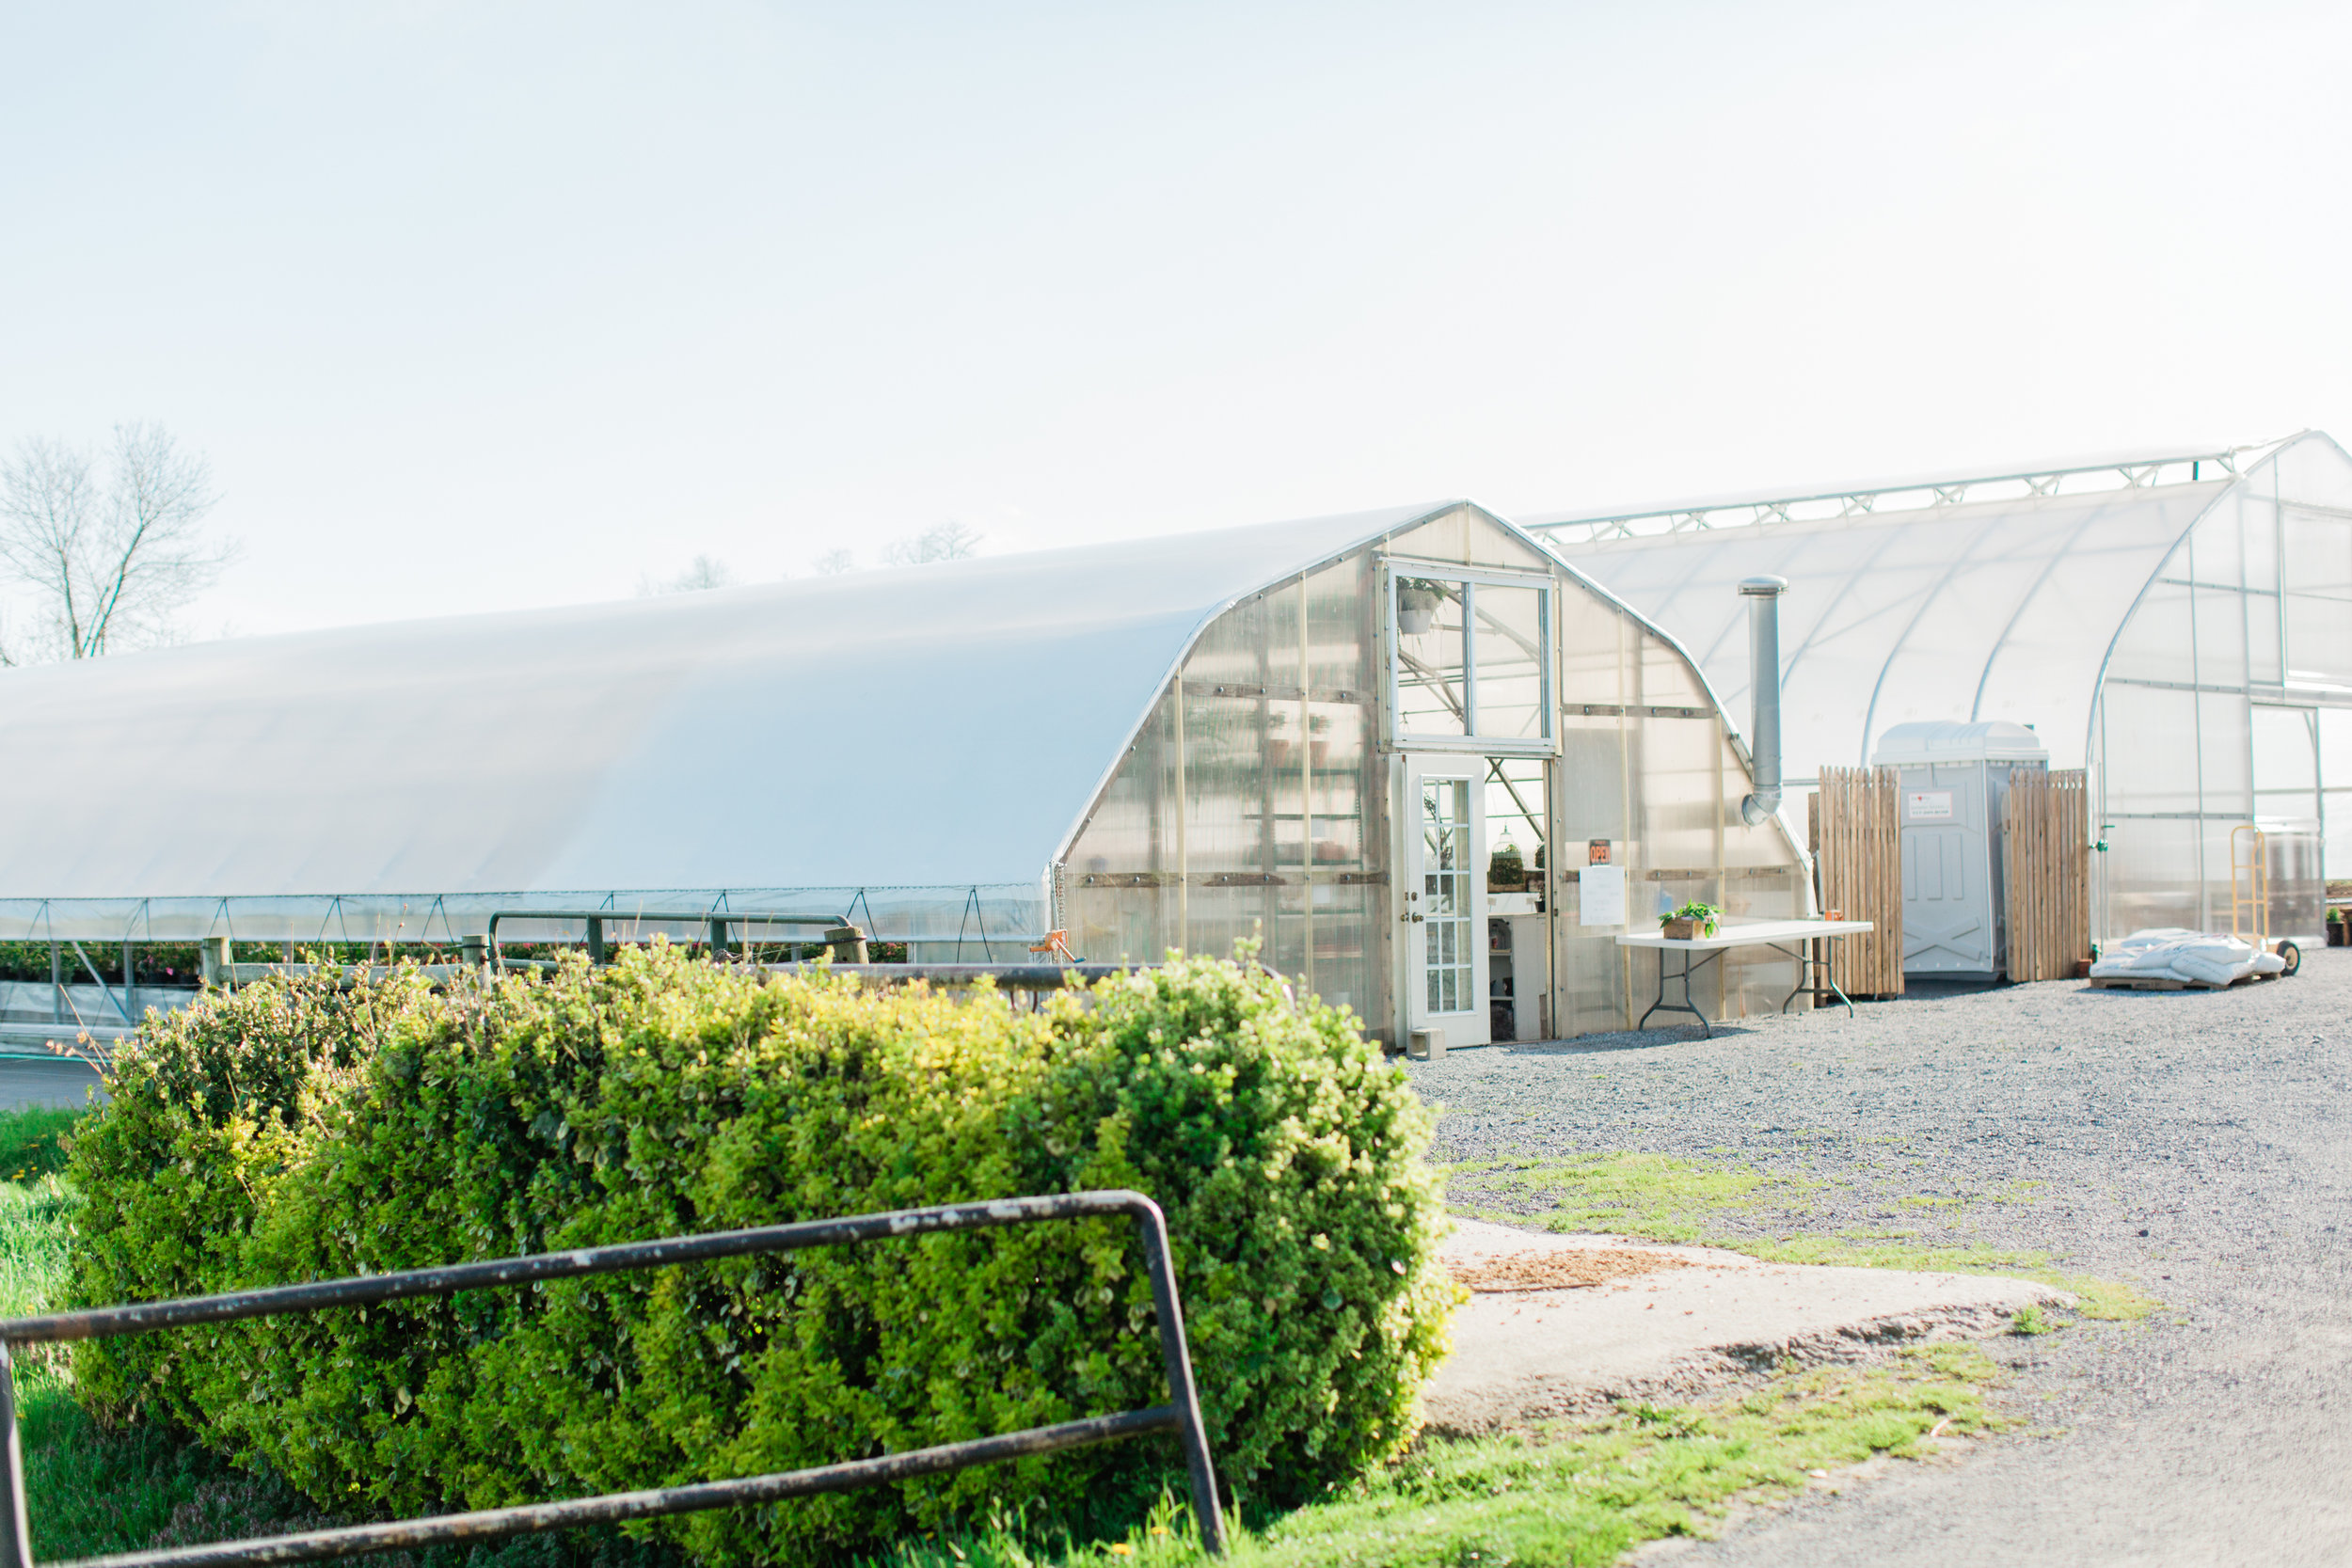 Don't you just love how a greenhouse looks from the outside?